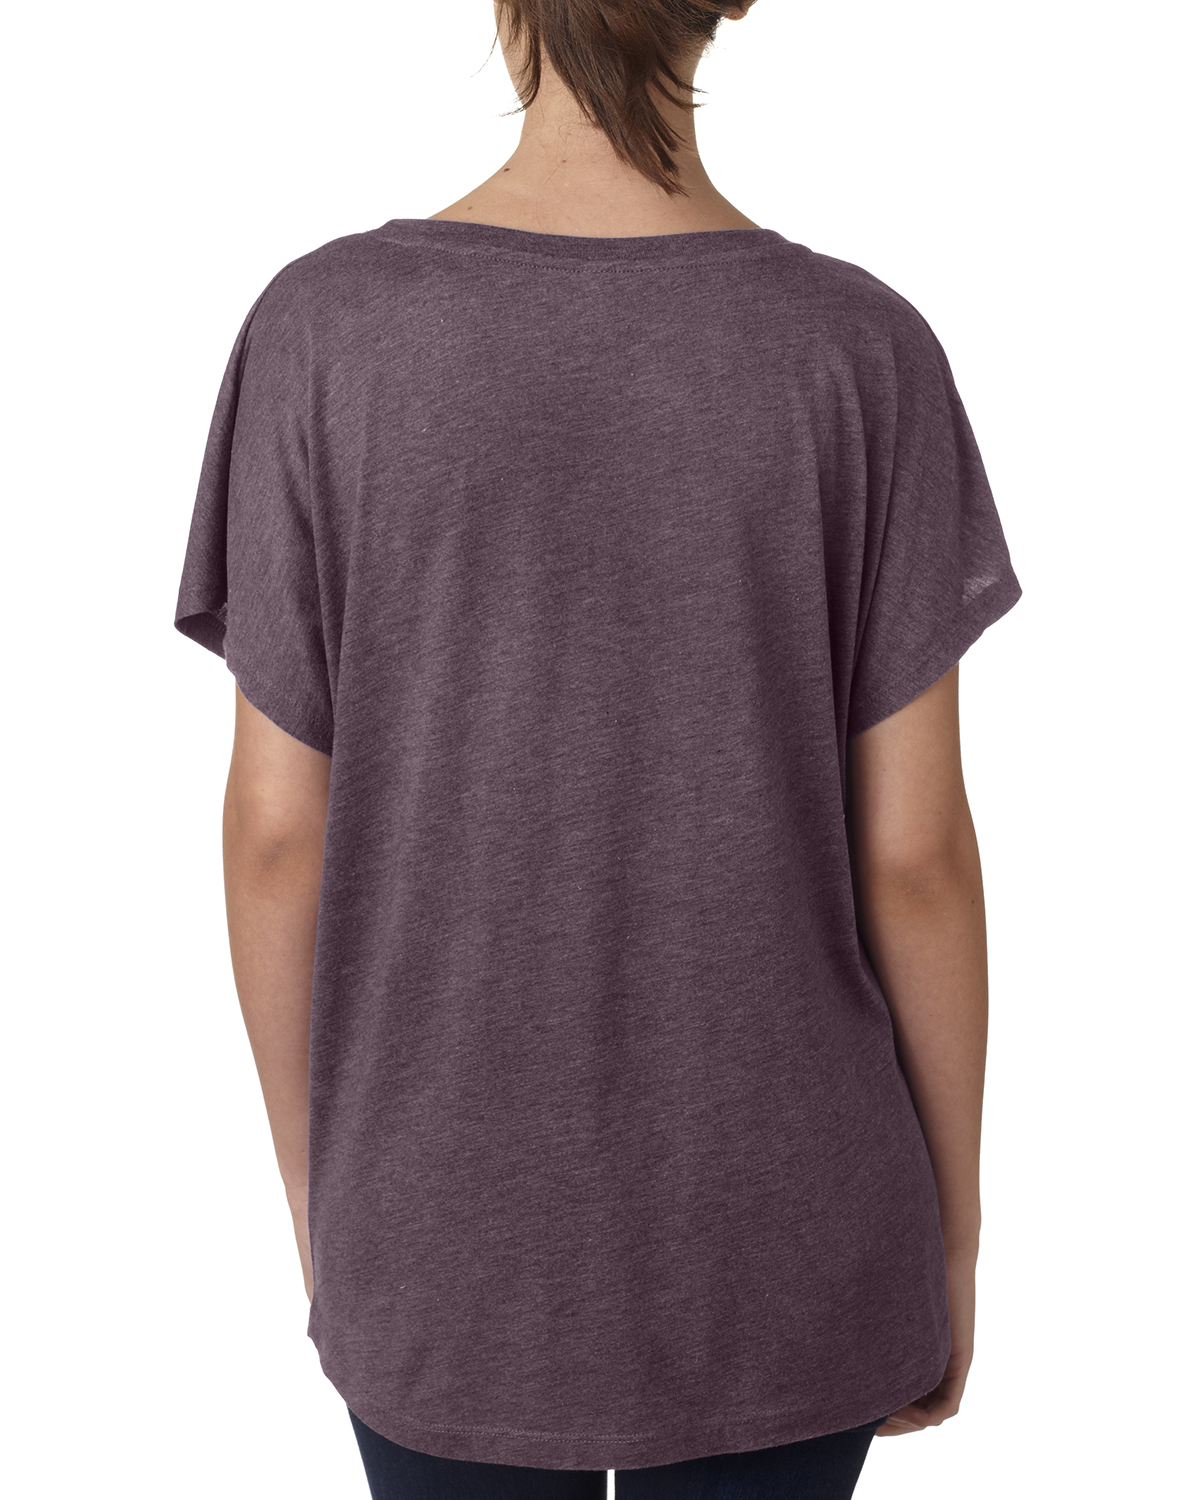 NEW-Next-Level-Junior-Fit-Triblend-Dolman-Sleeve-Relexed-Fit-T-Shirt-B-6760 thumbnail 36